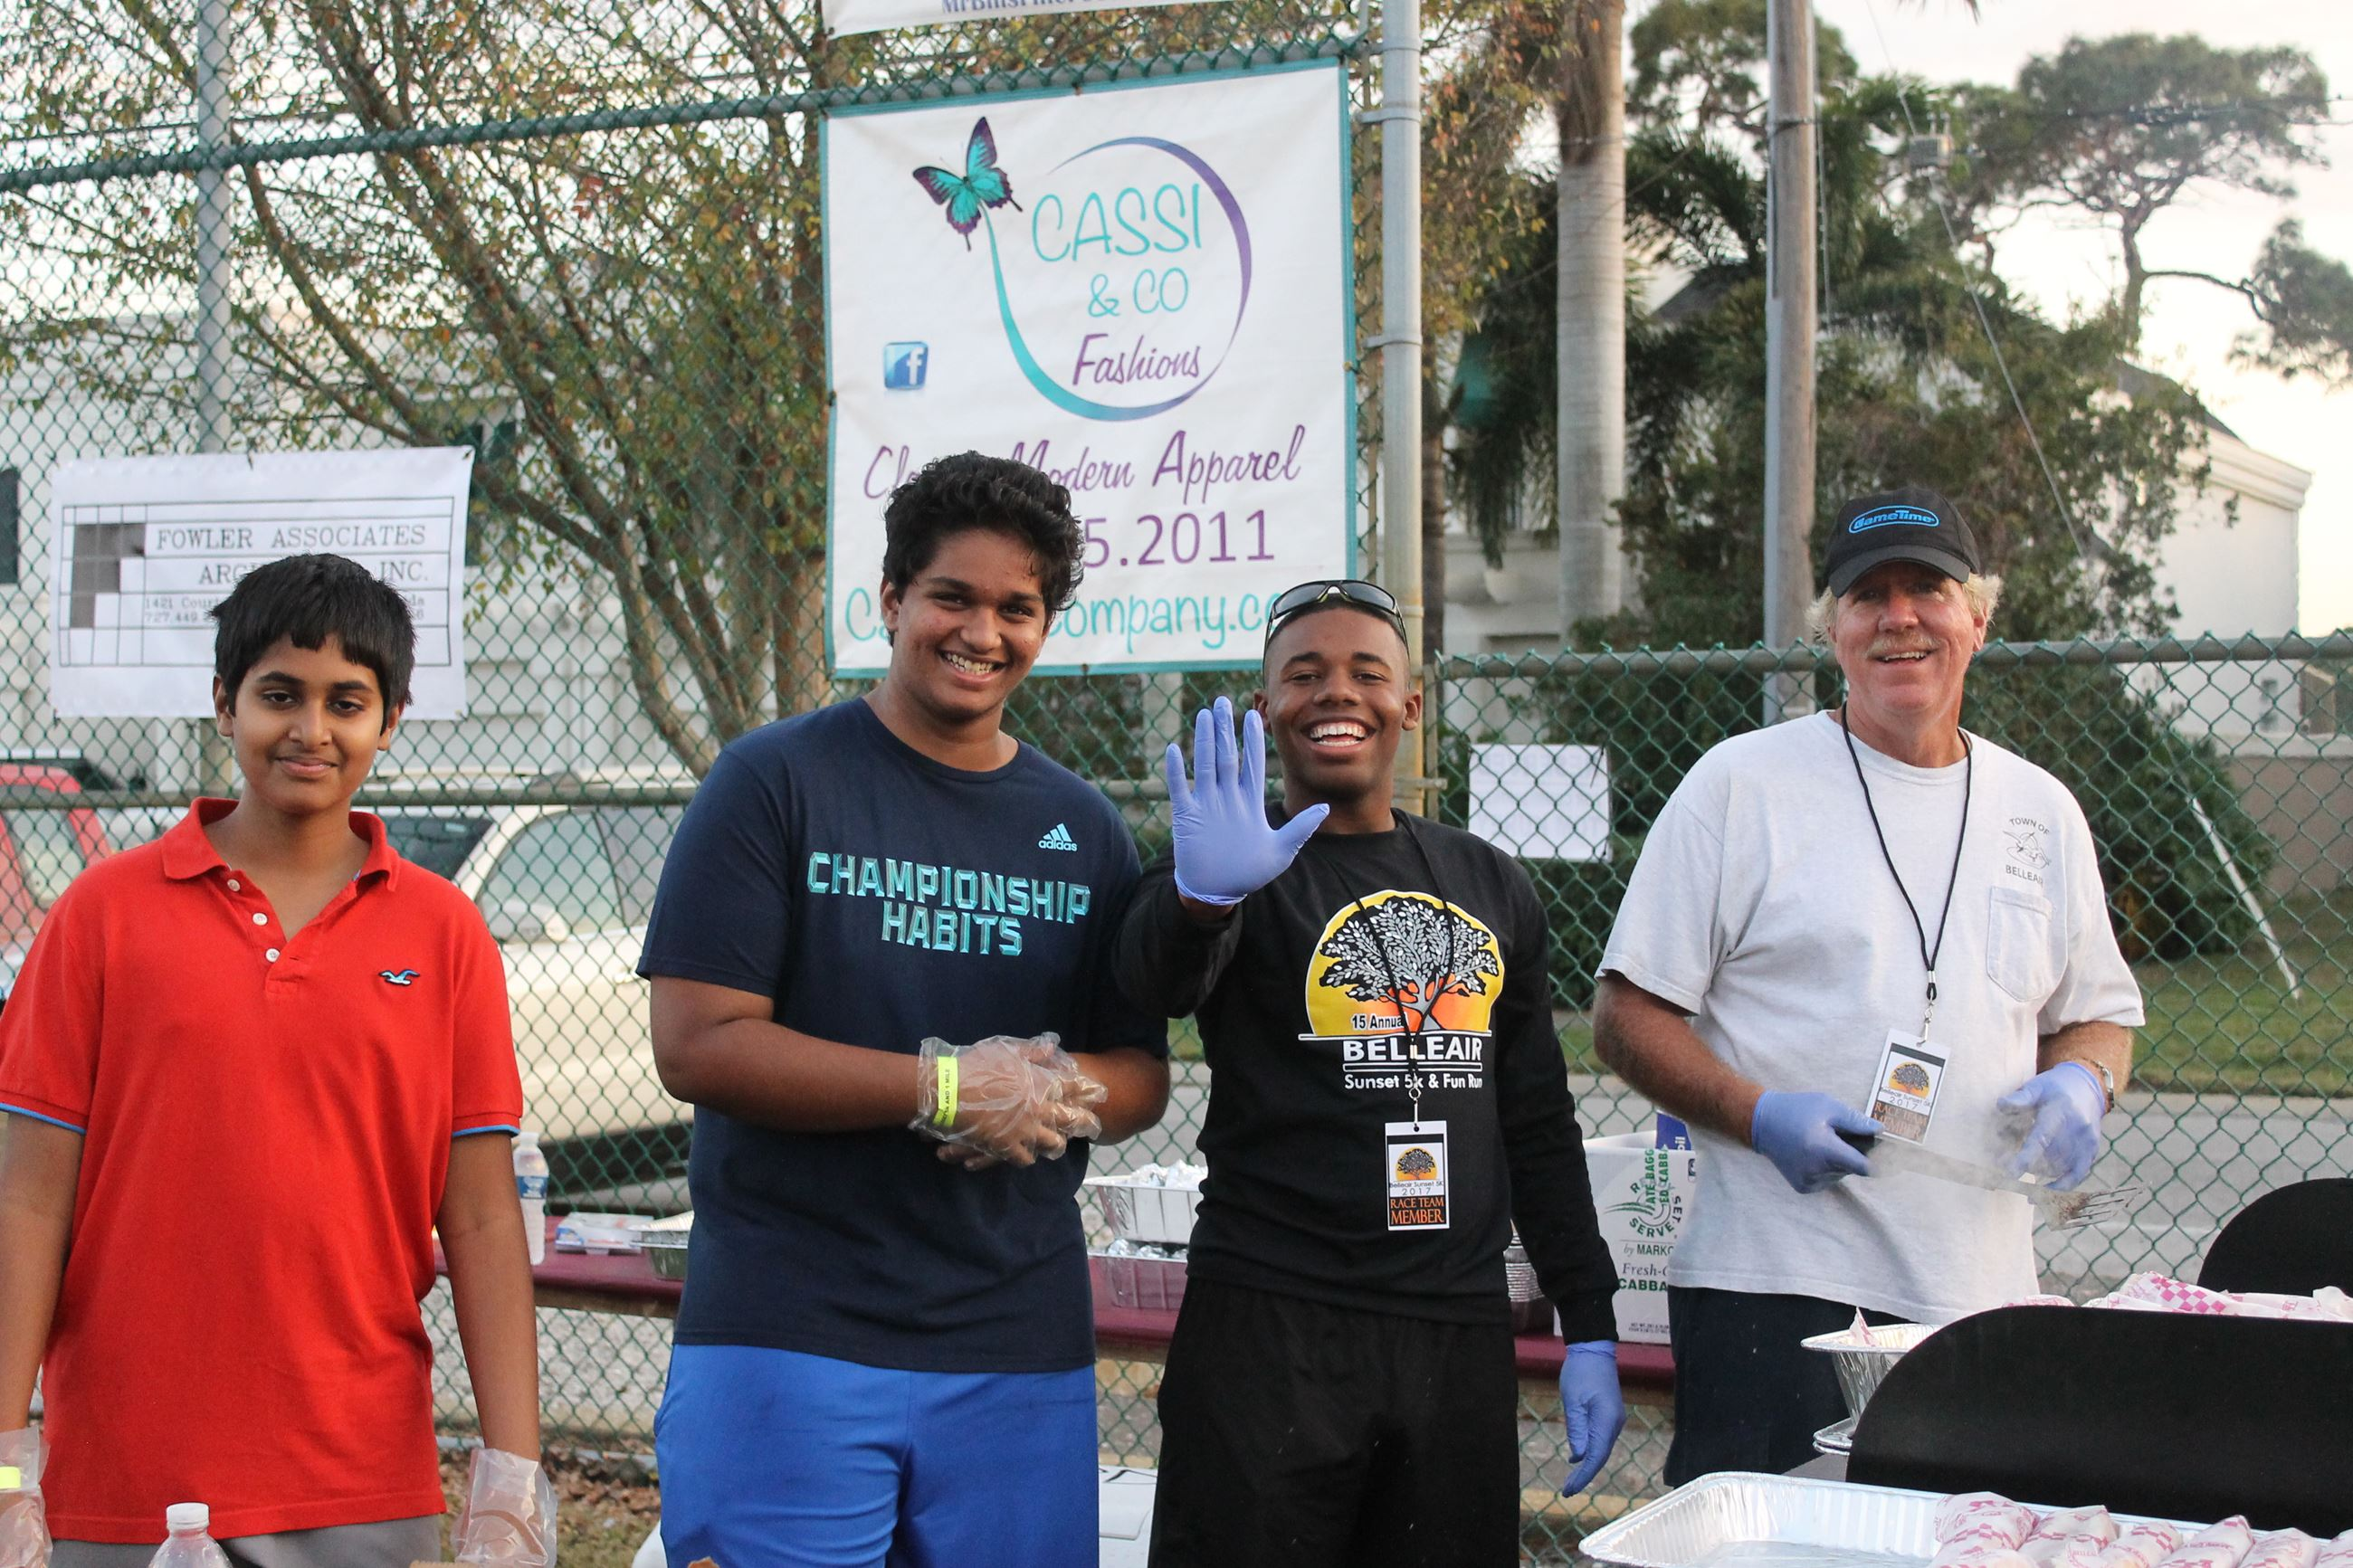 Two young volunteers assist staff making hamburgers and hot dogs at the Sunset 5K & Fun Run after pa